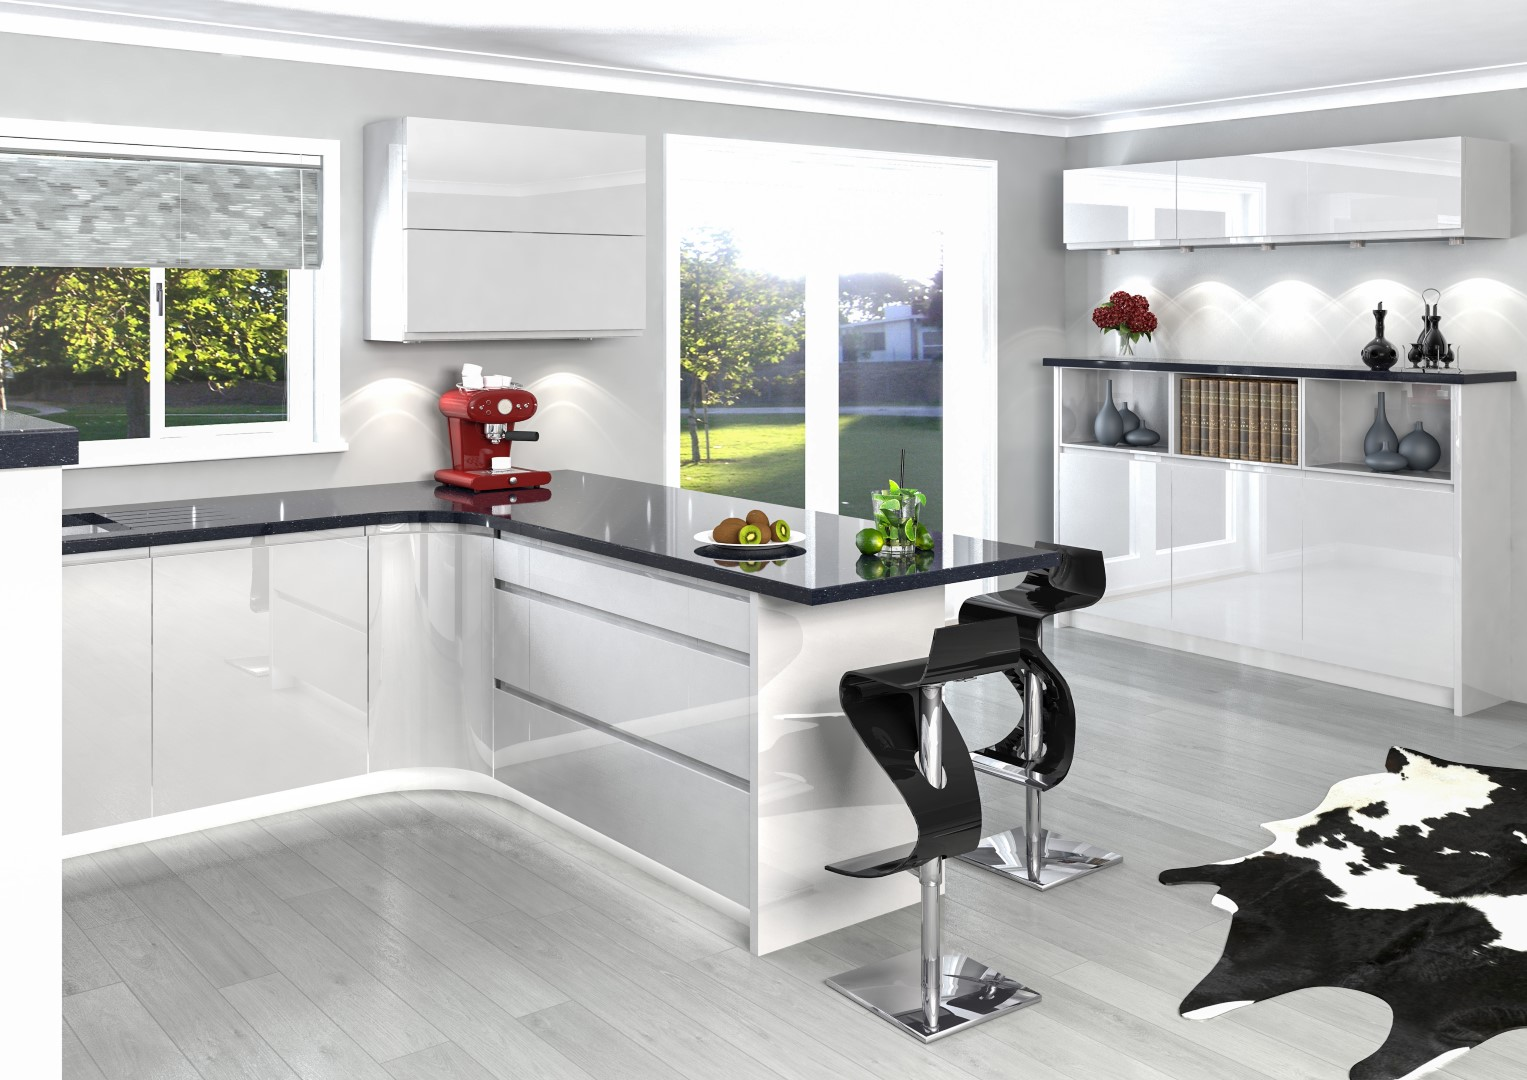 wonderful kitchen design ideas uk designs with seating and stove